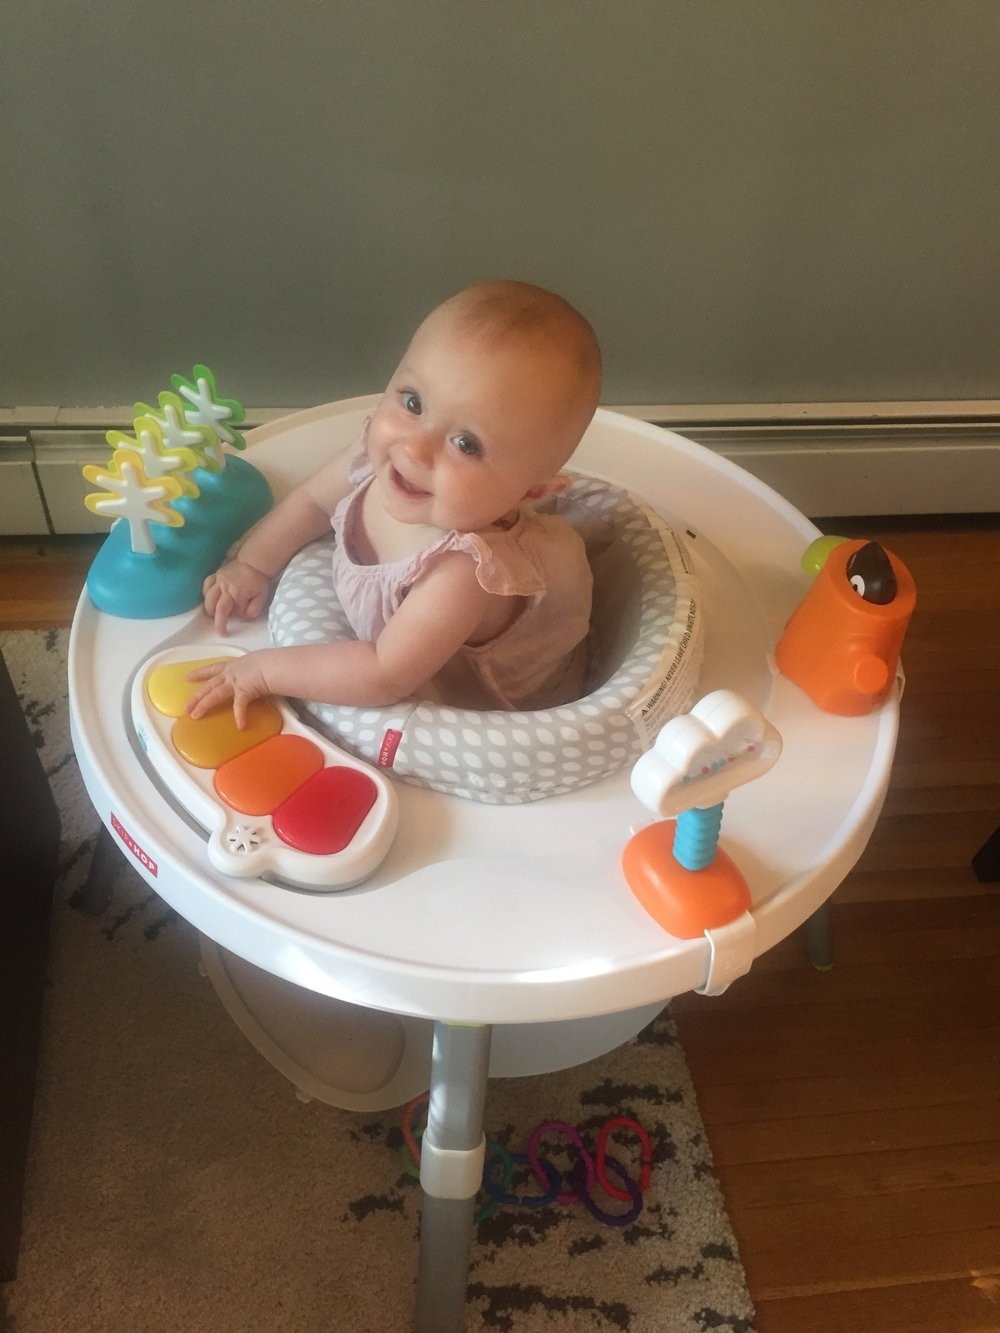 7 Favorite 3-6 Months Old Essentials — FEED THE BODY AND SOUL